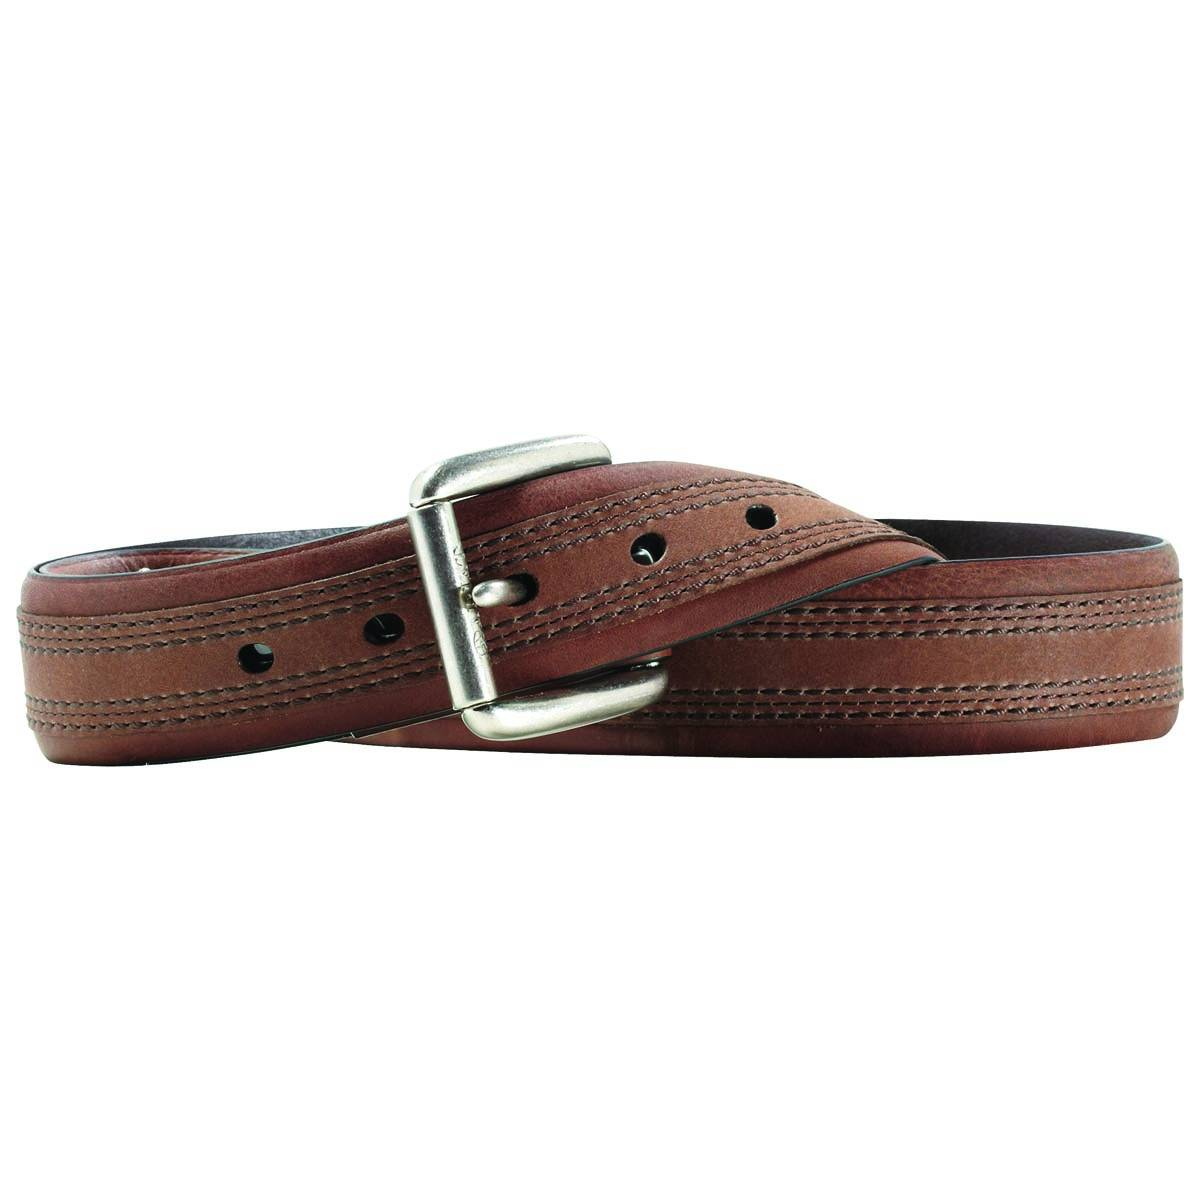 ARIAT Women's Cheyenne Western Belt